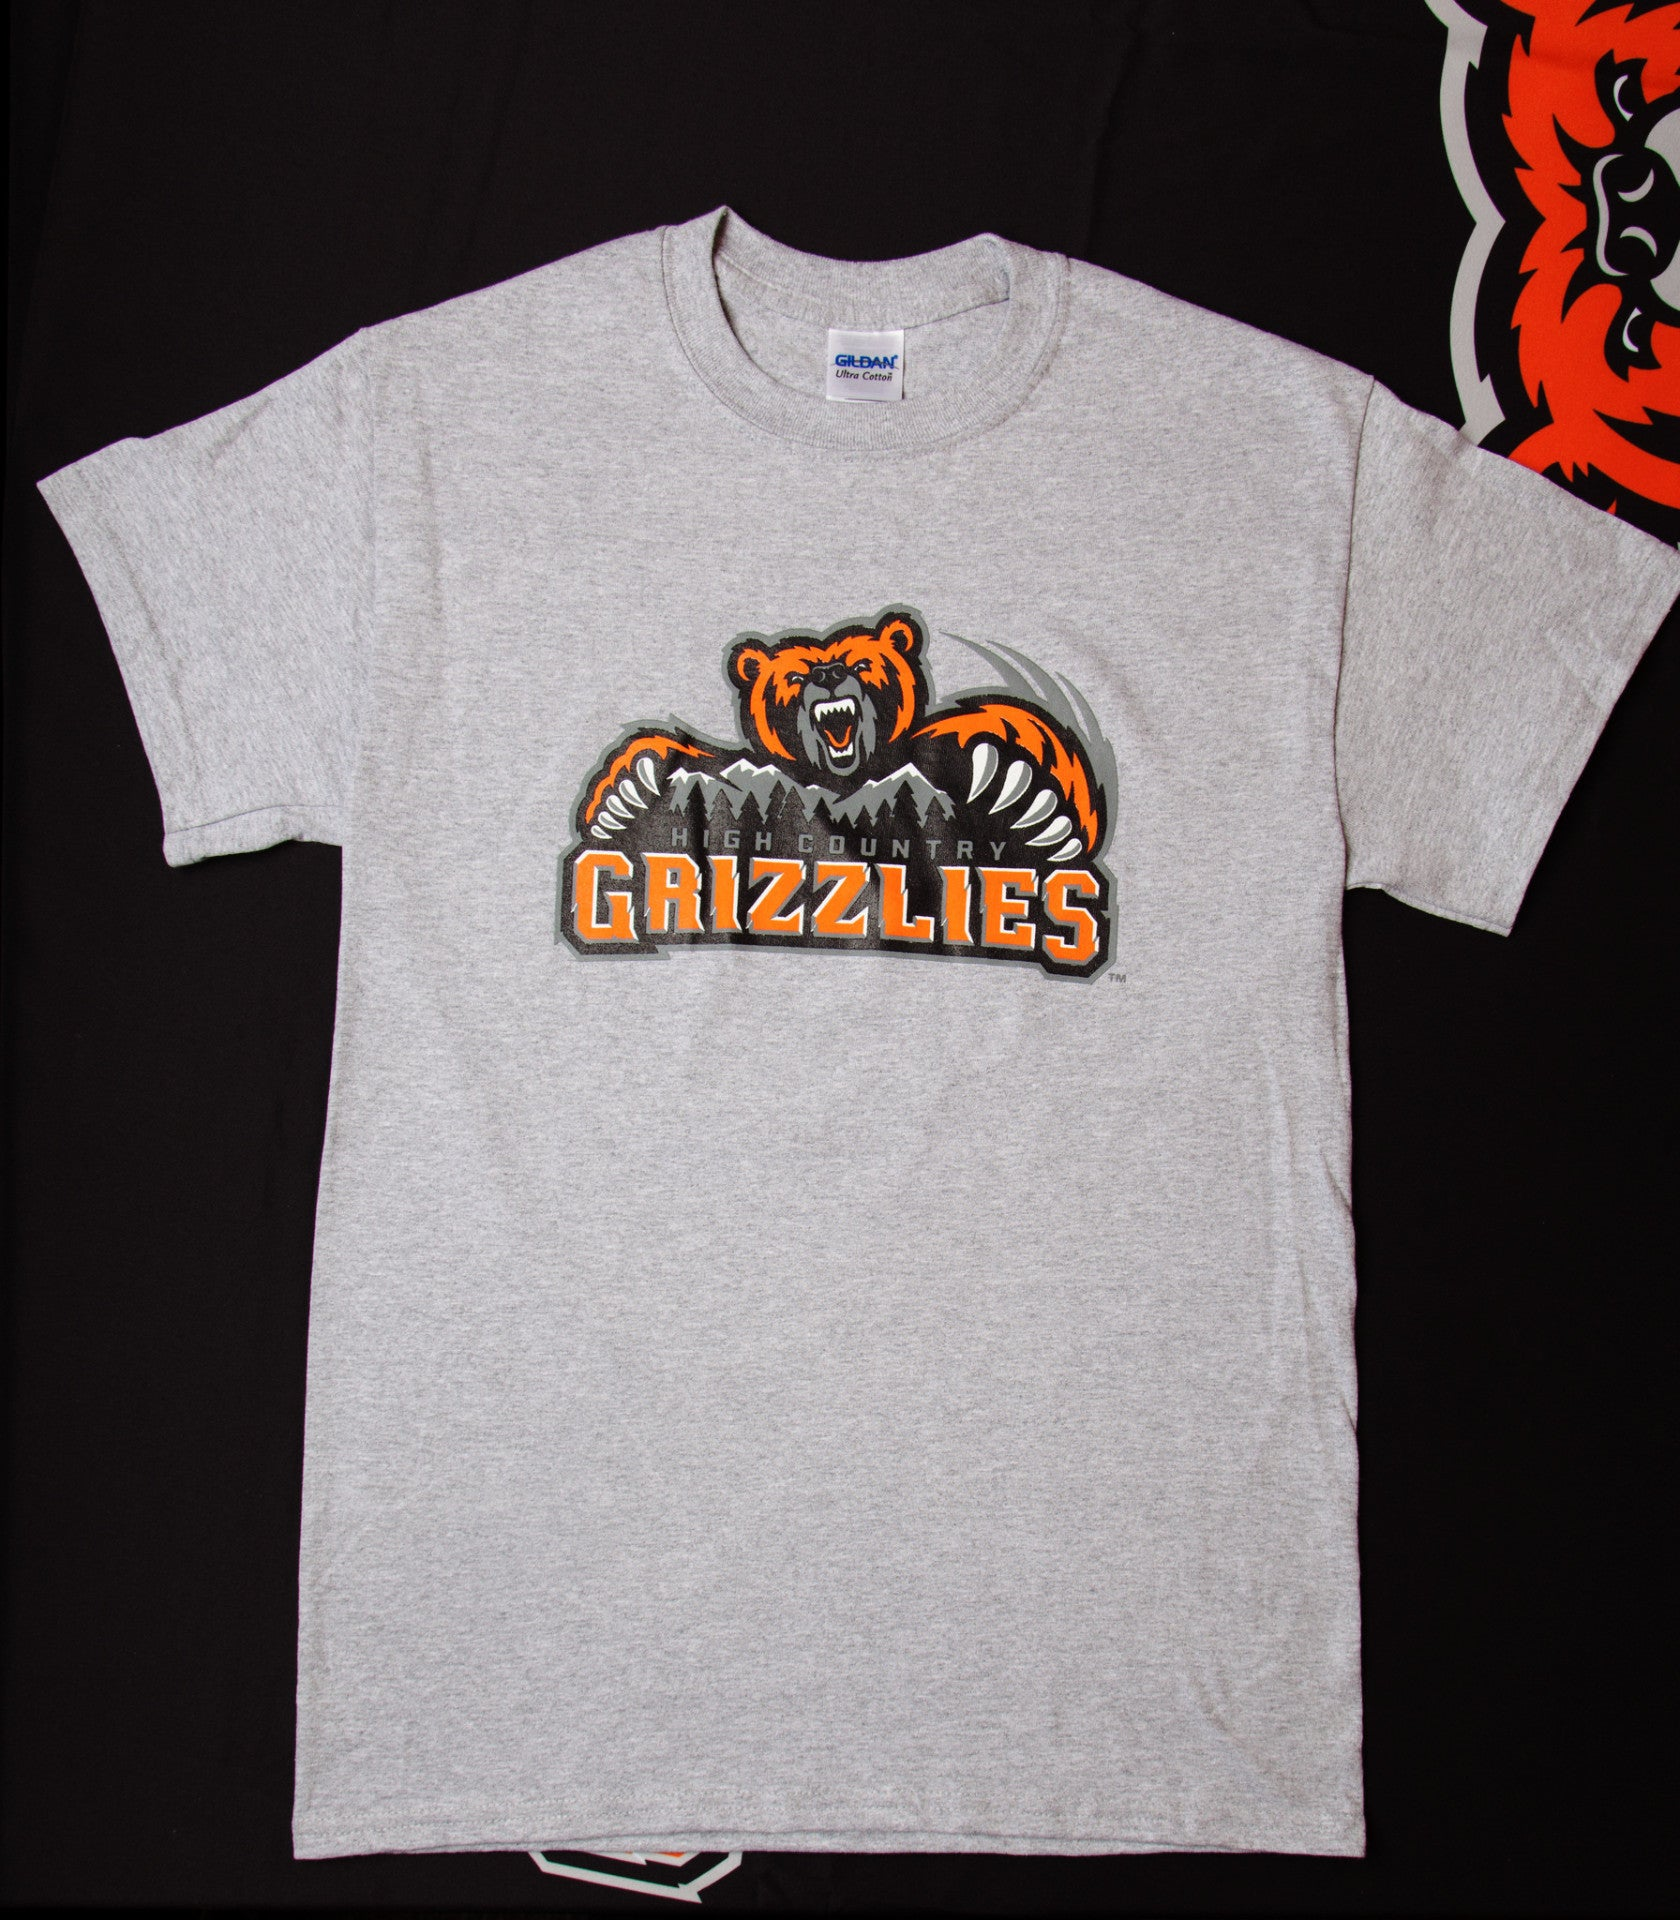 High Country Grizzlies Short Sleeve T-Shirt